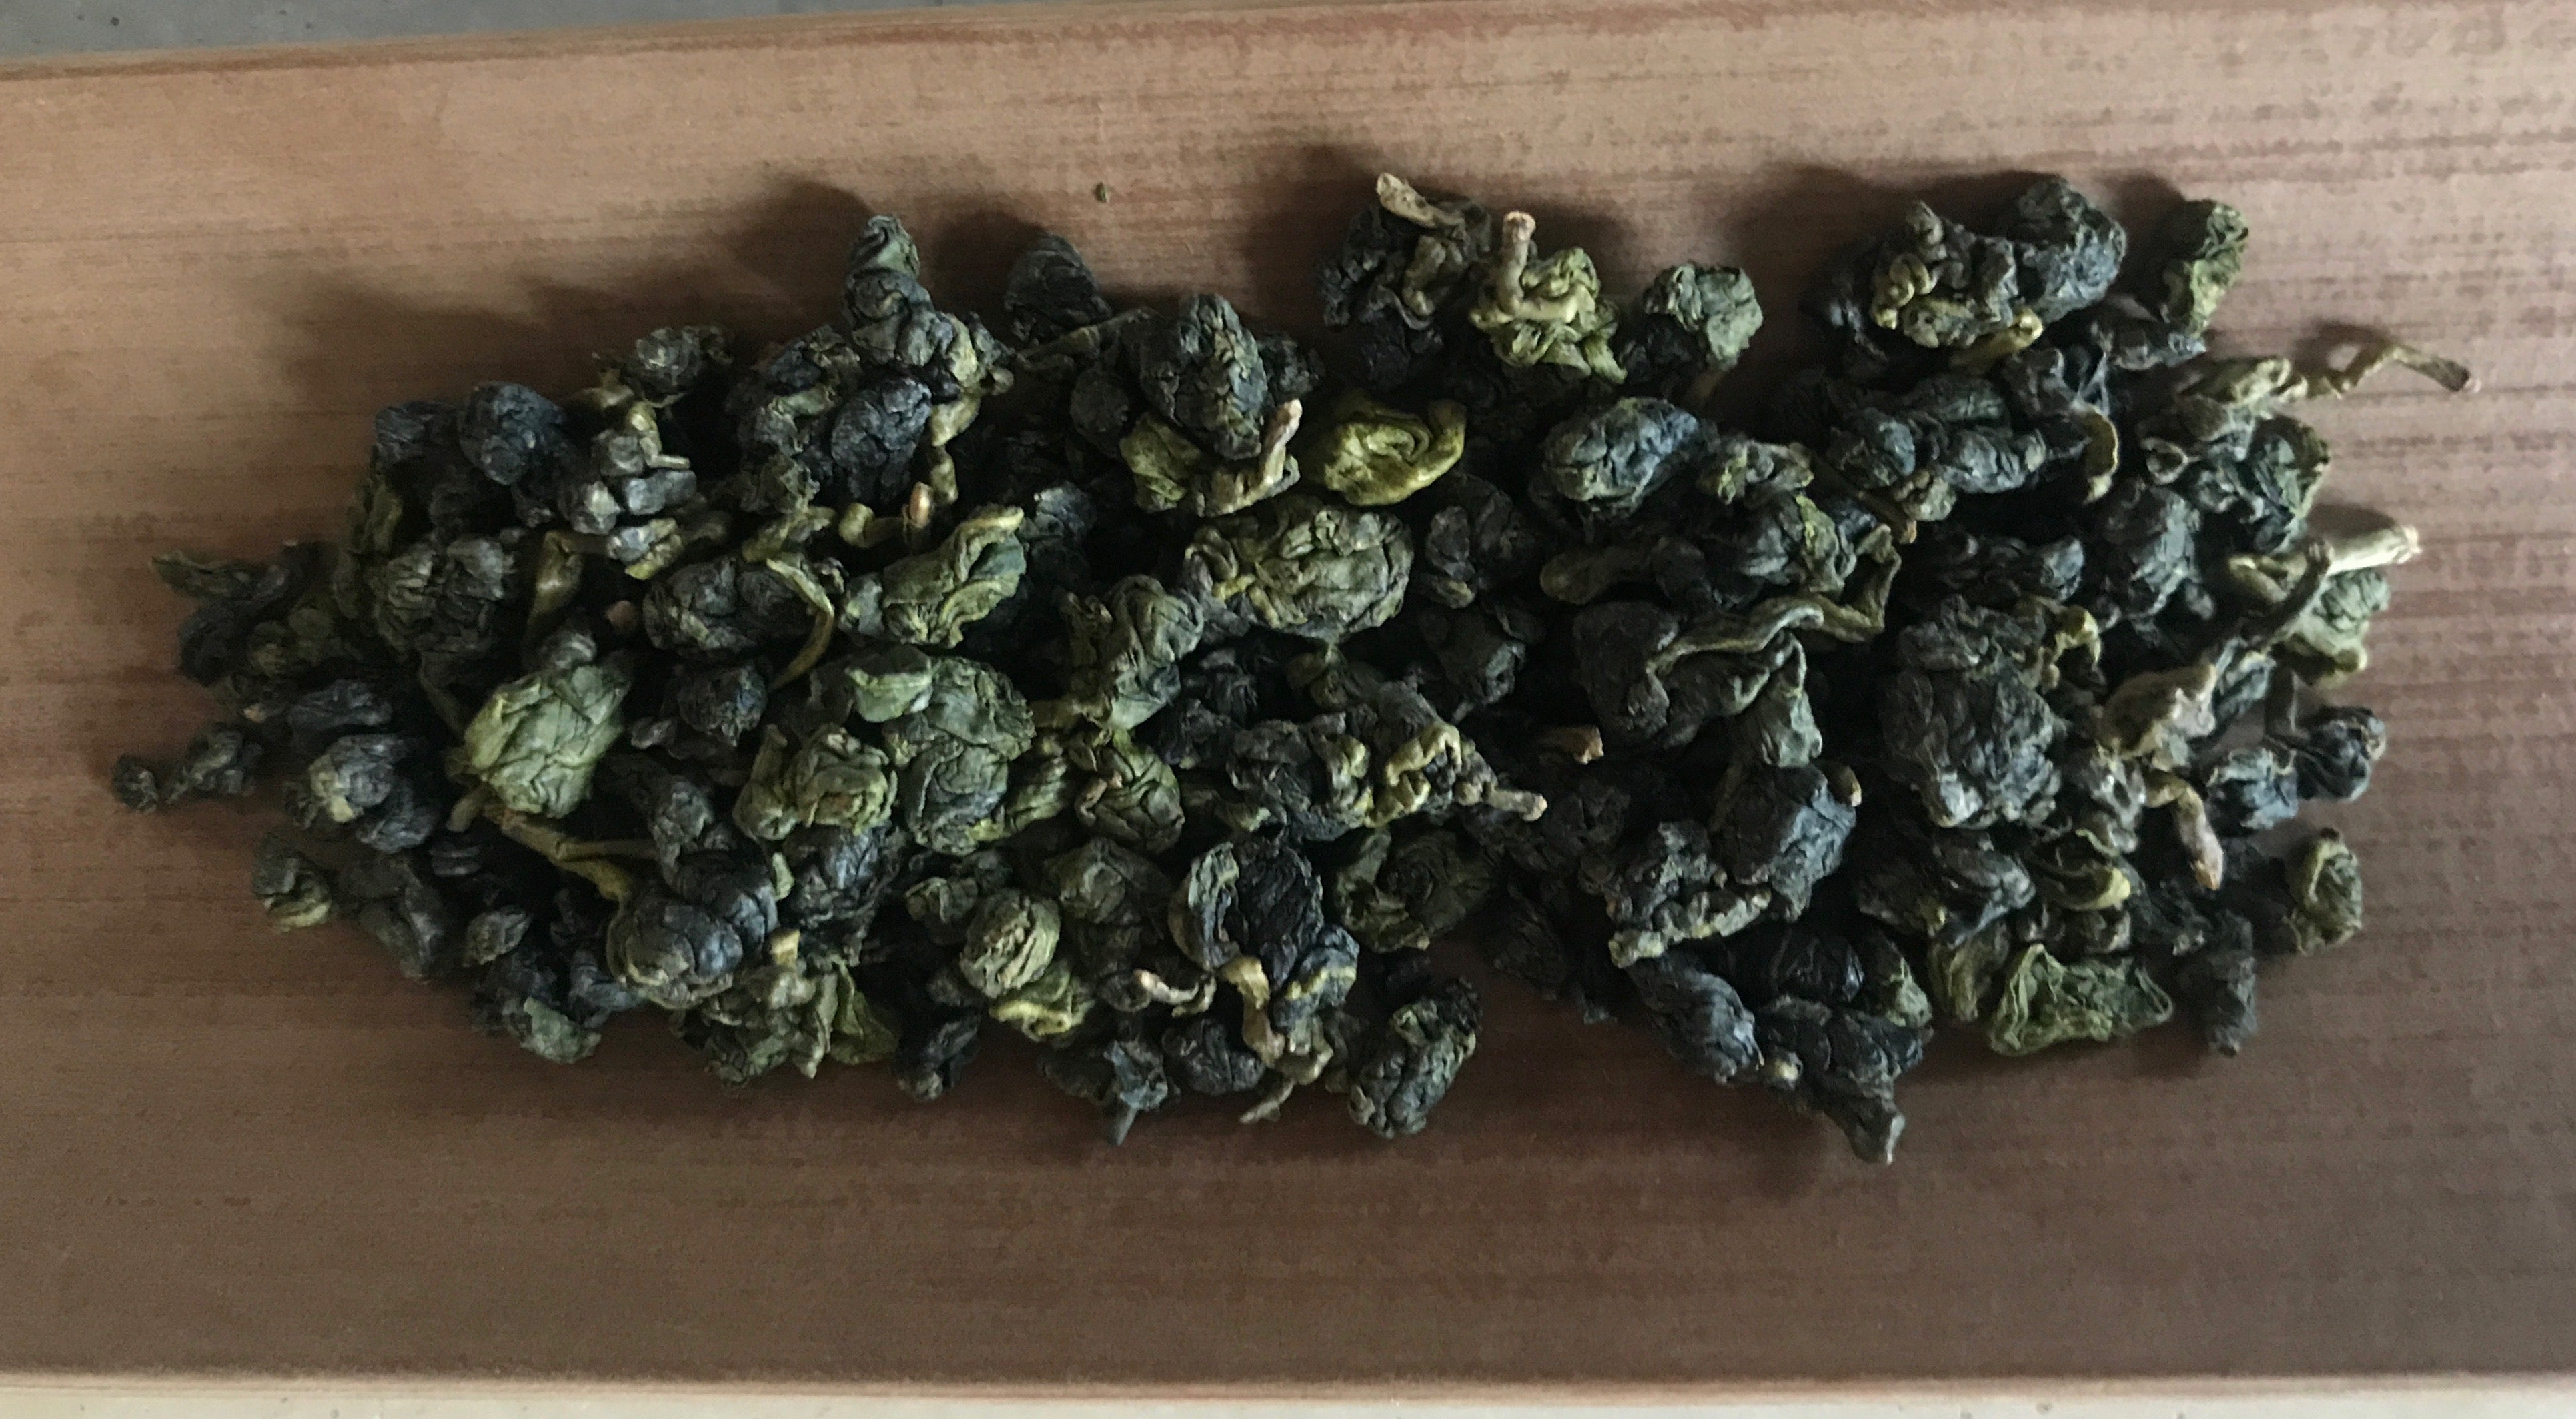 Long Feng Xia High Mountain Oolong dried leaves